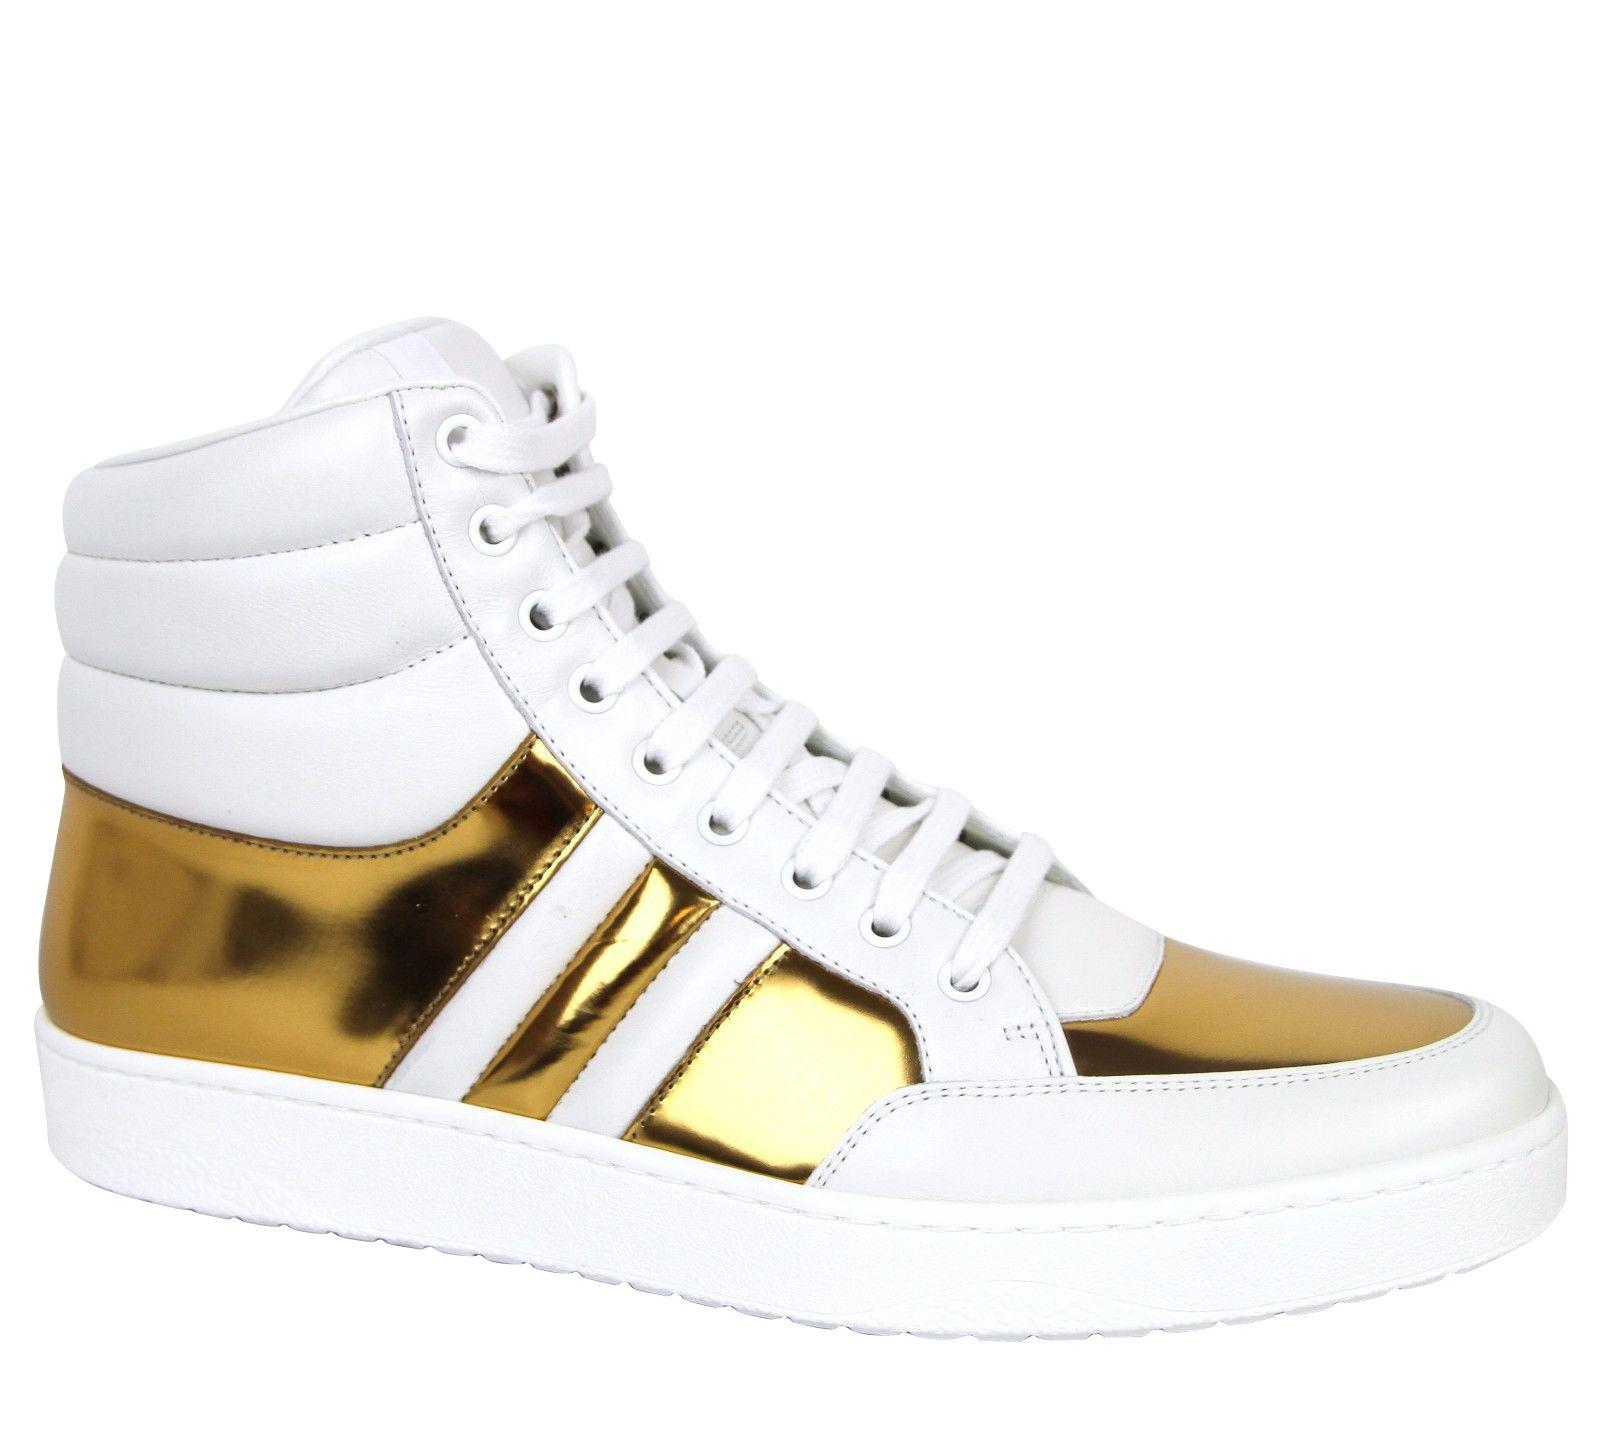 02baa5b0211b Gucci - White High Top Contrast Padded Leather Sneaker 368494 for Men -  Lyst. View fullscreen